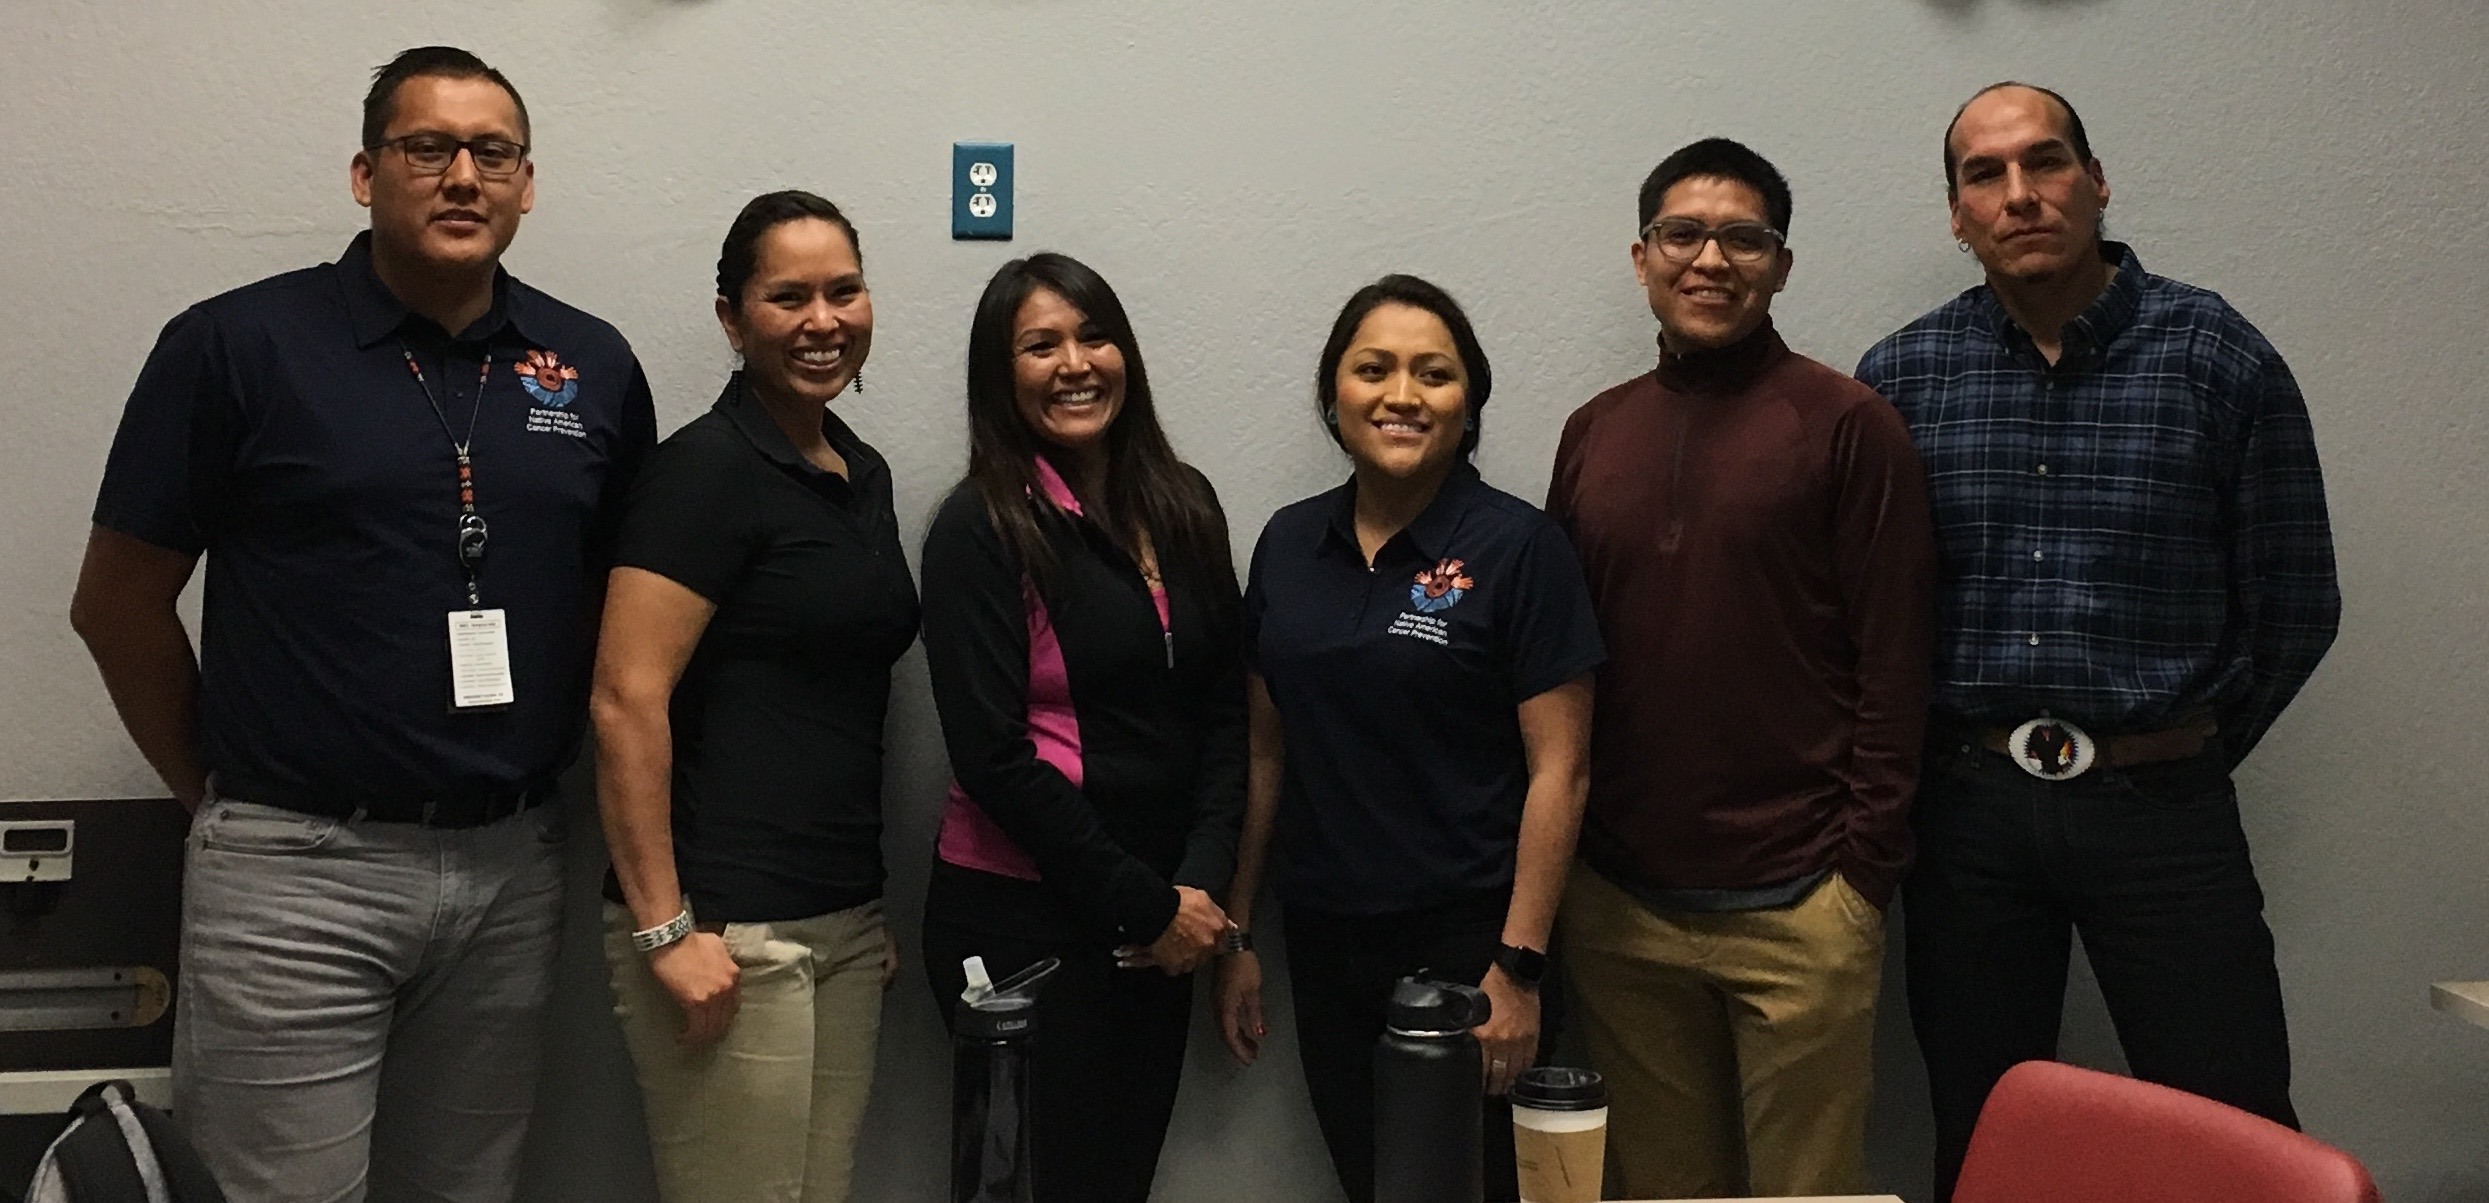 The Partnerchip of Native American Cancer Prevention